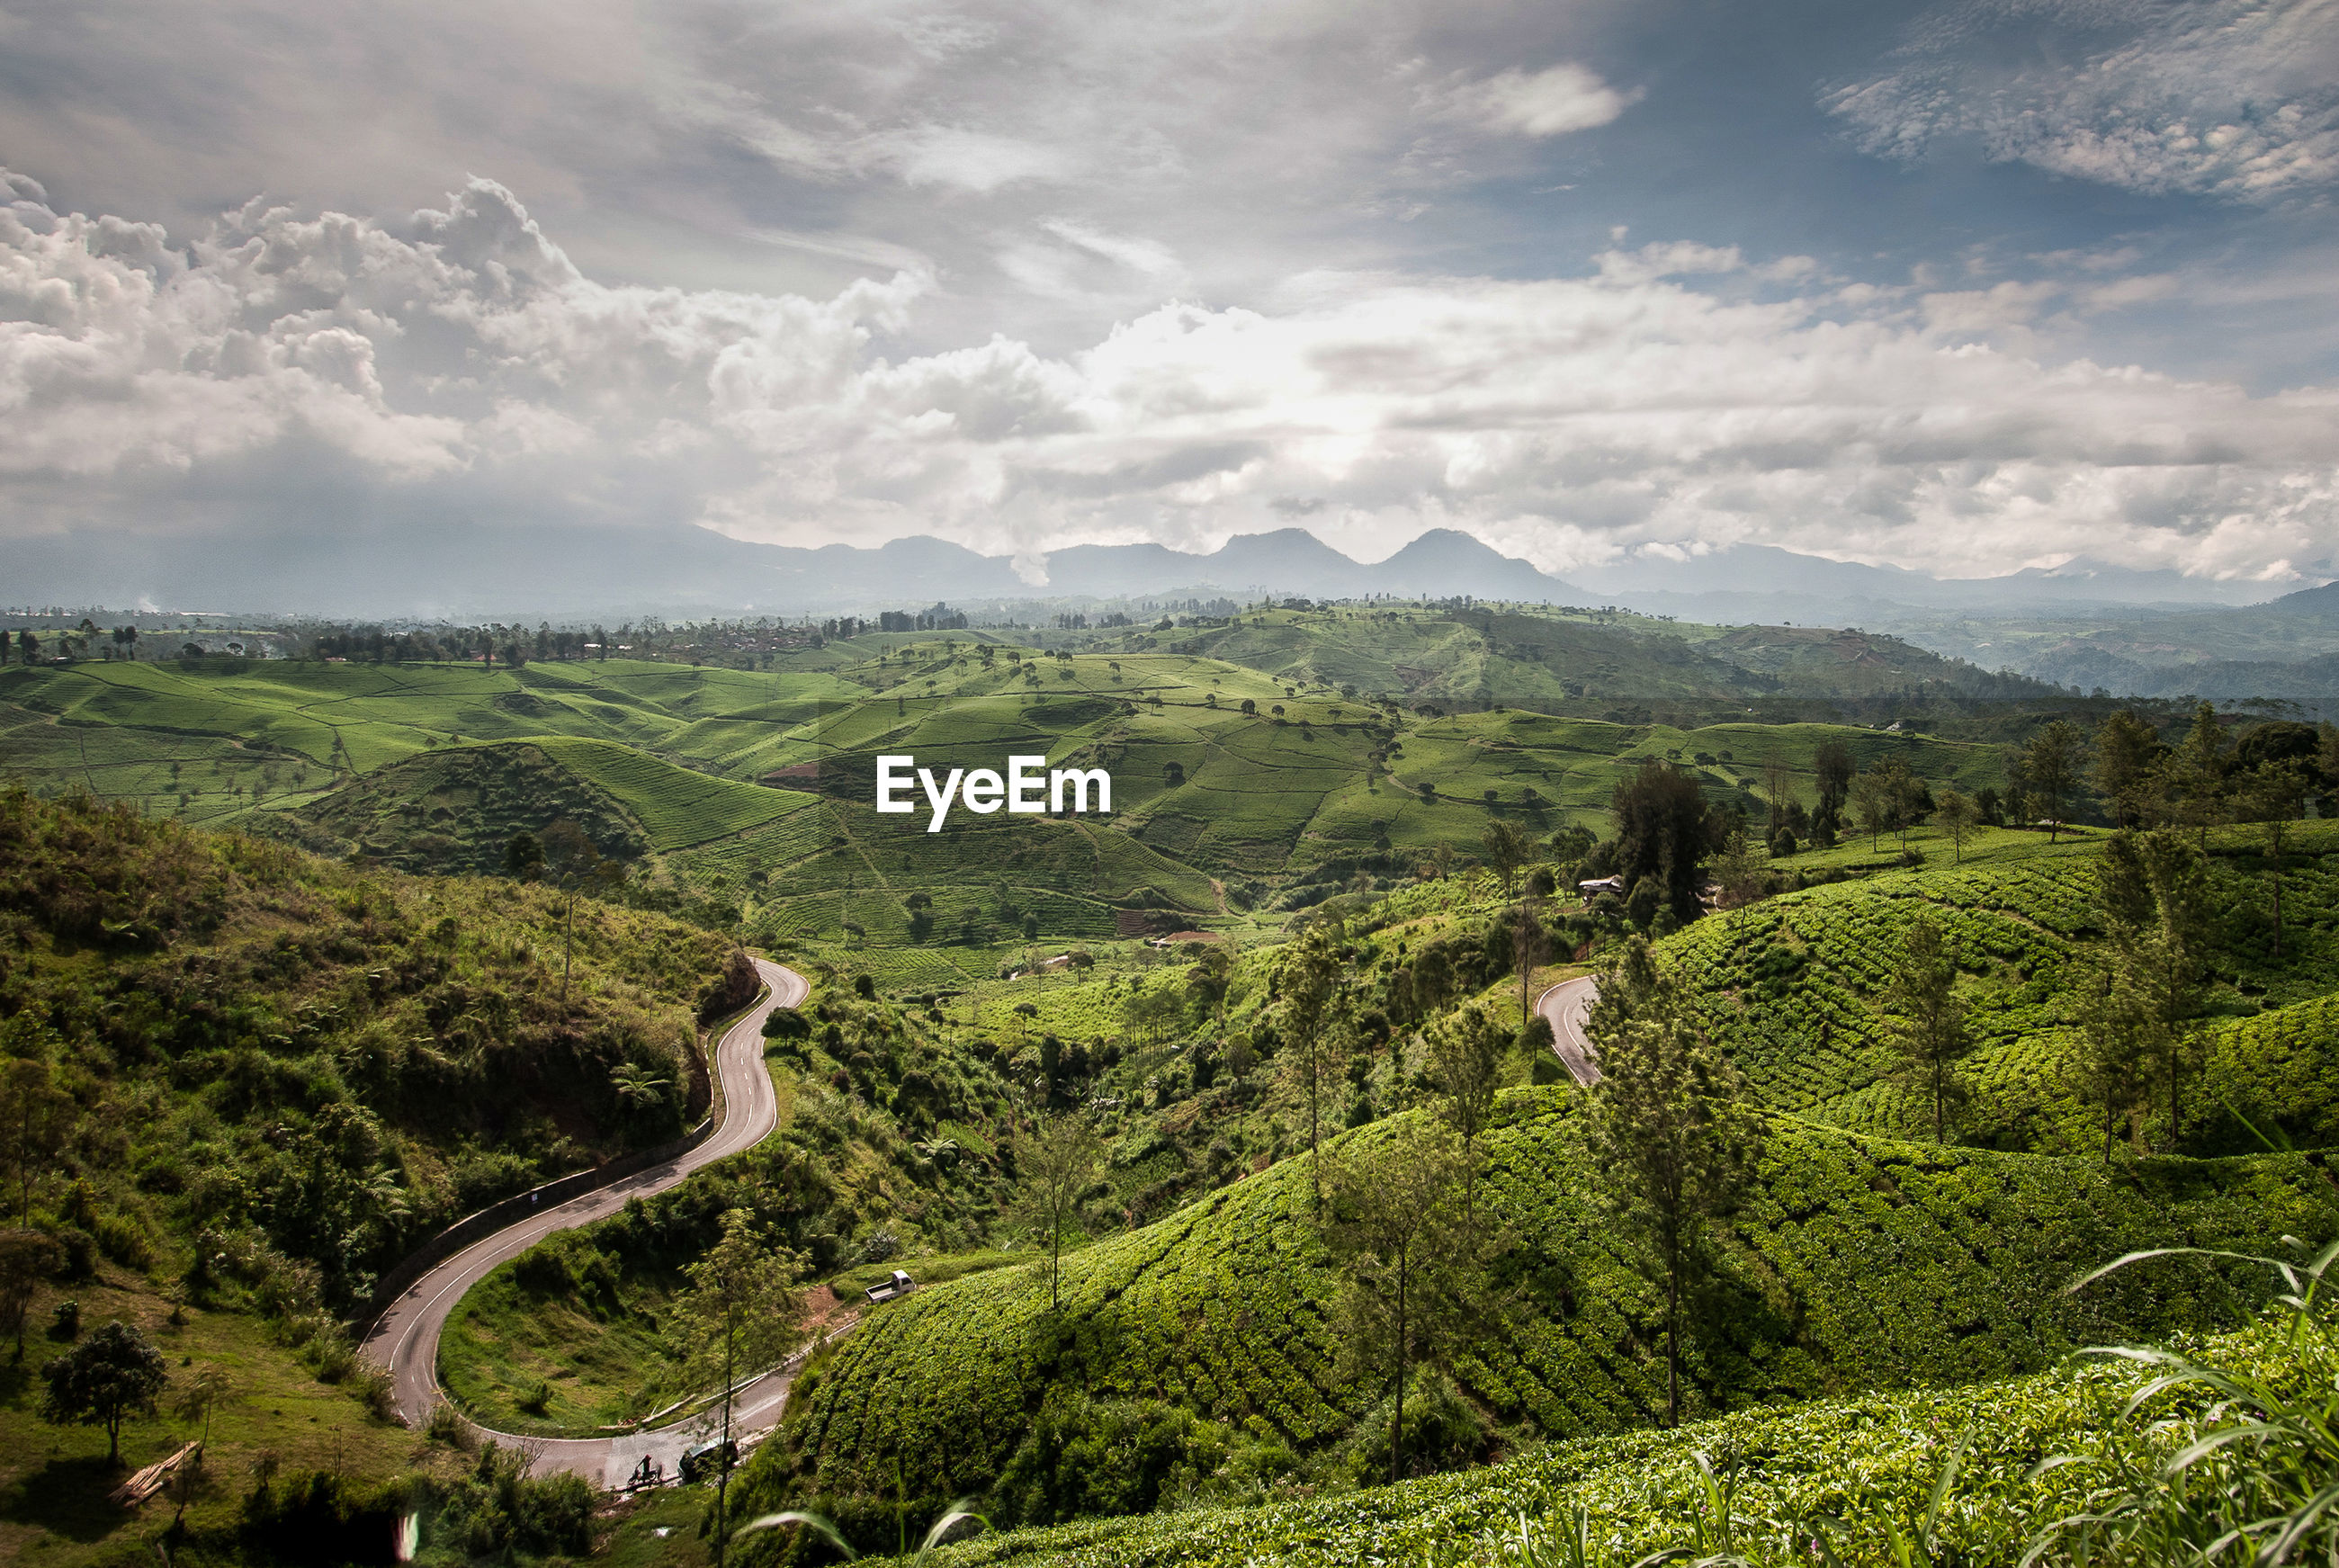 Scenic view of green hills against cloudy sky